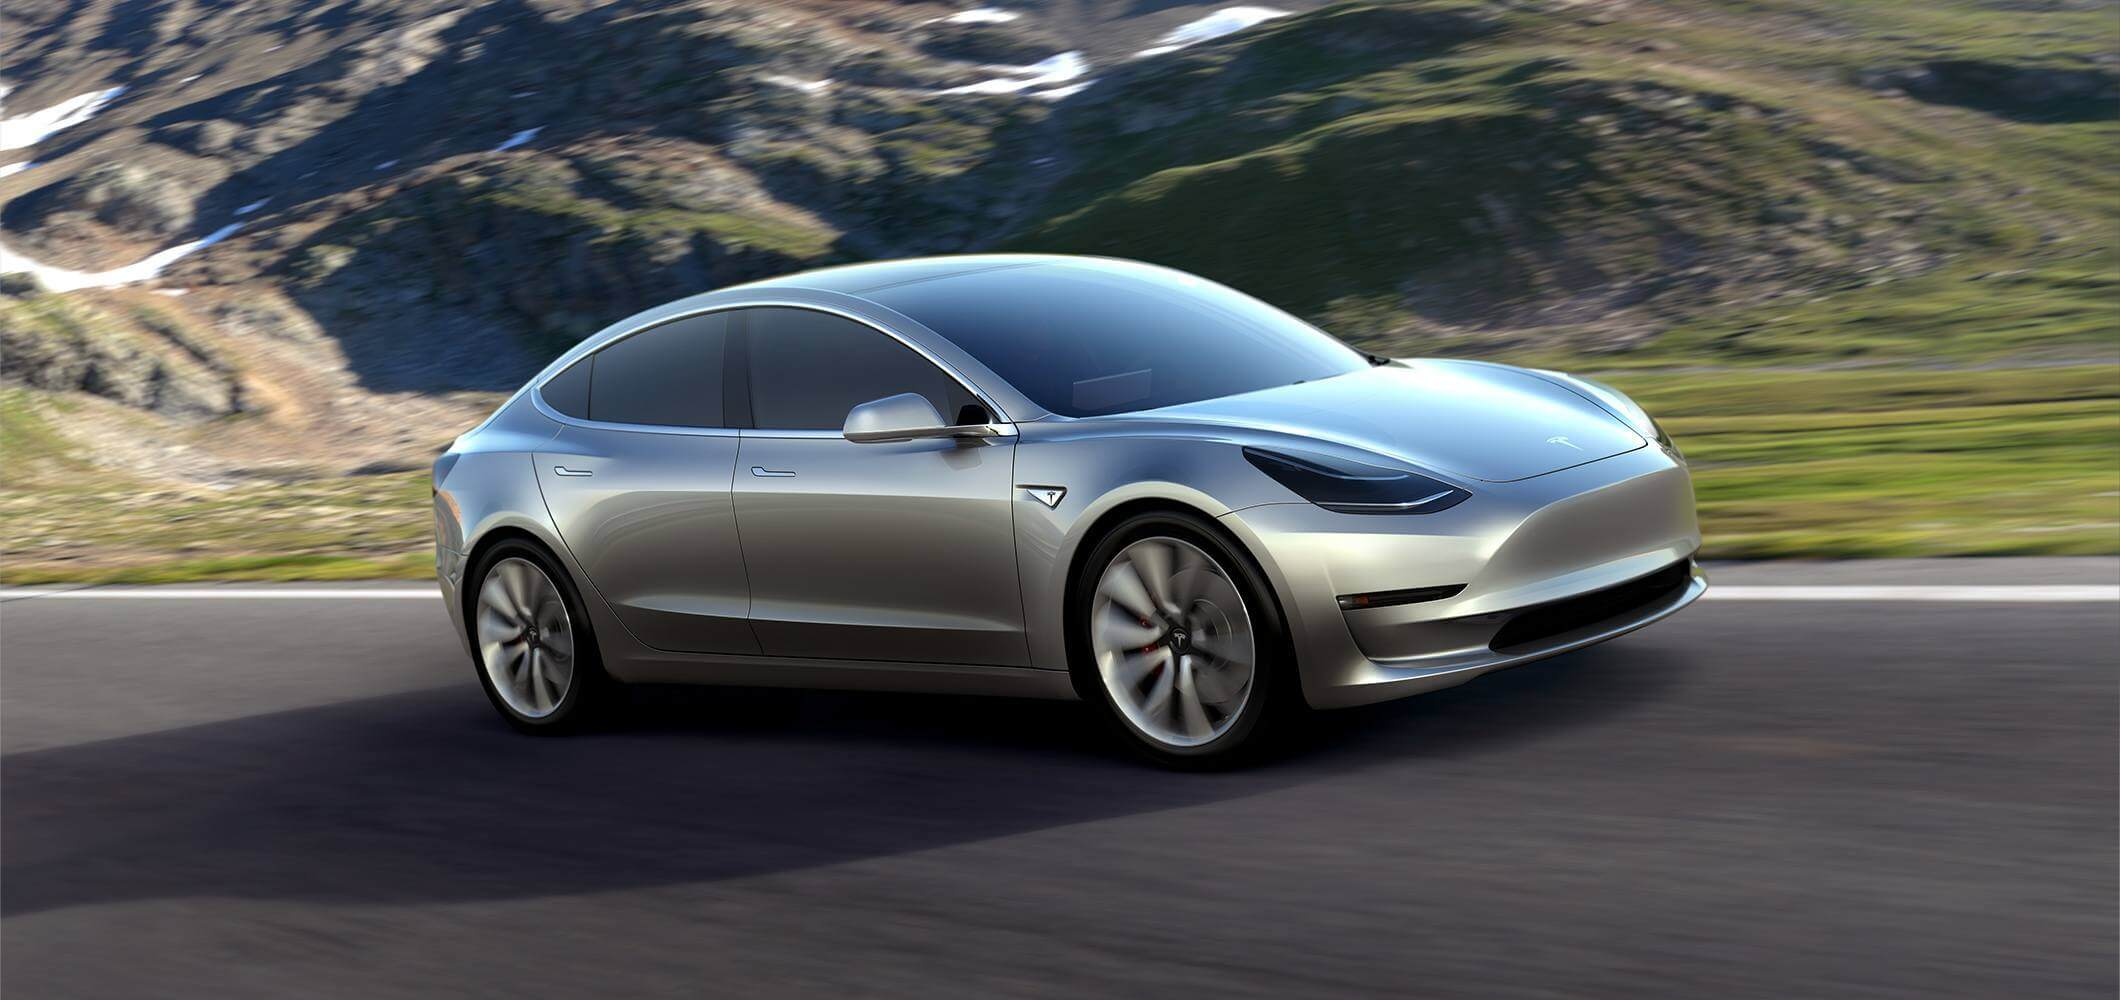 Image courtesy of Tesla Motors (click image to go to site).